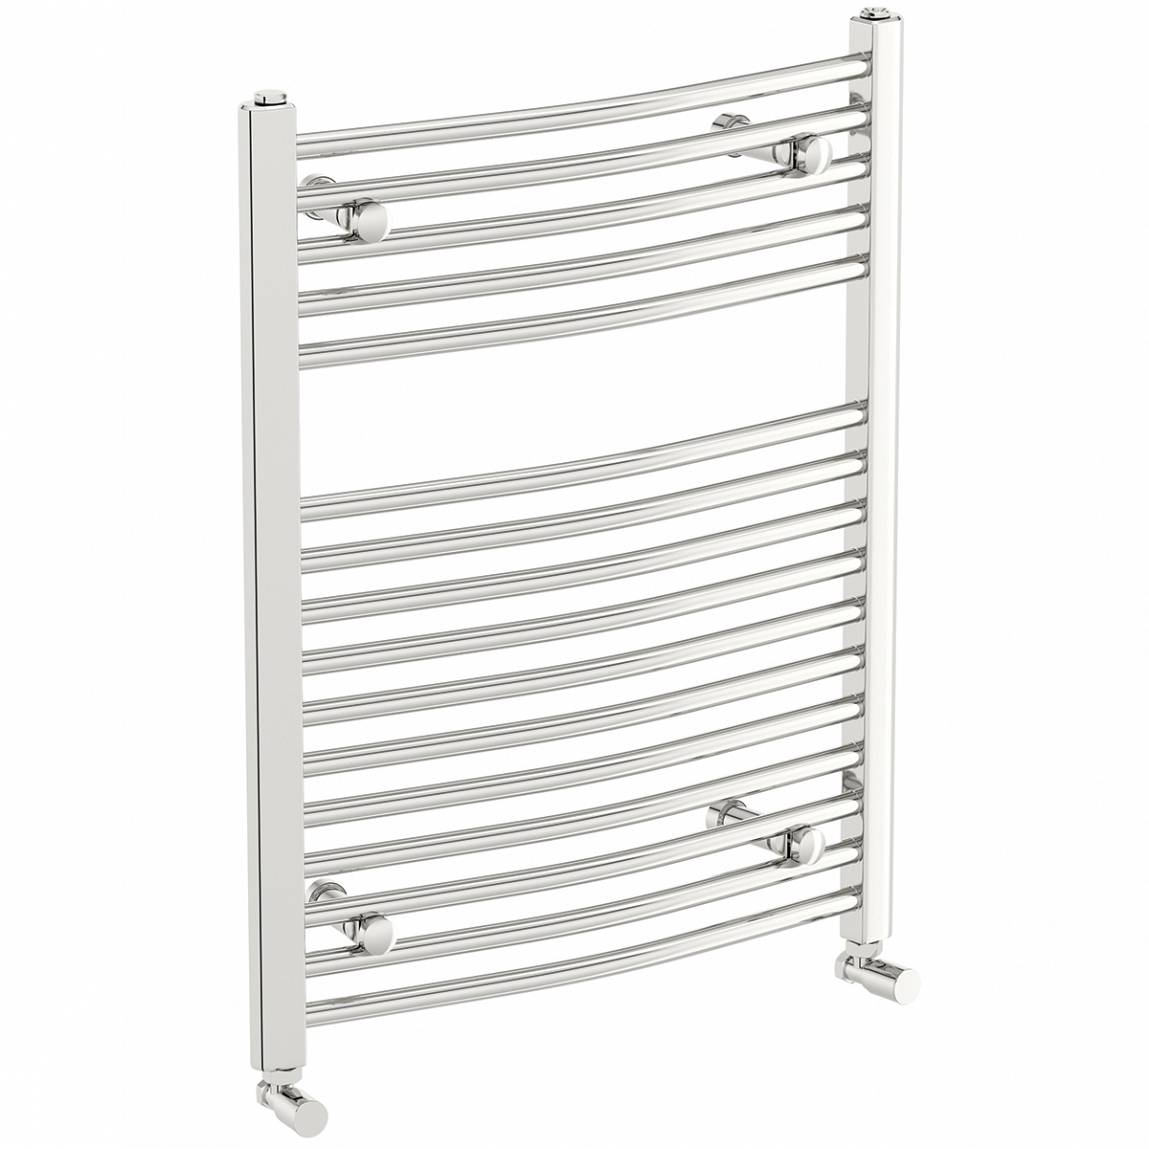 Image of Curved Heated Towel Rail 750 x 600